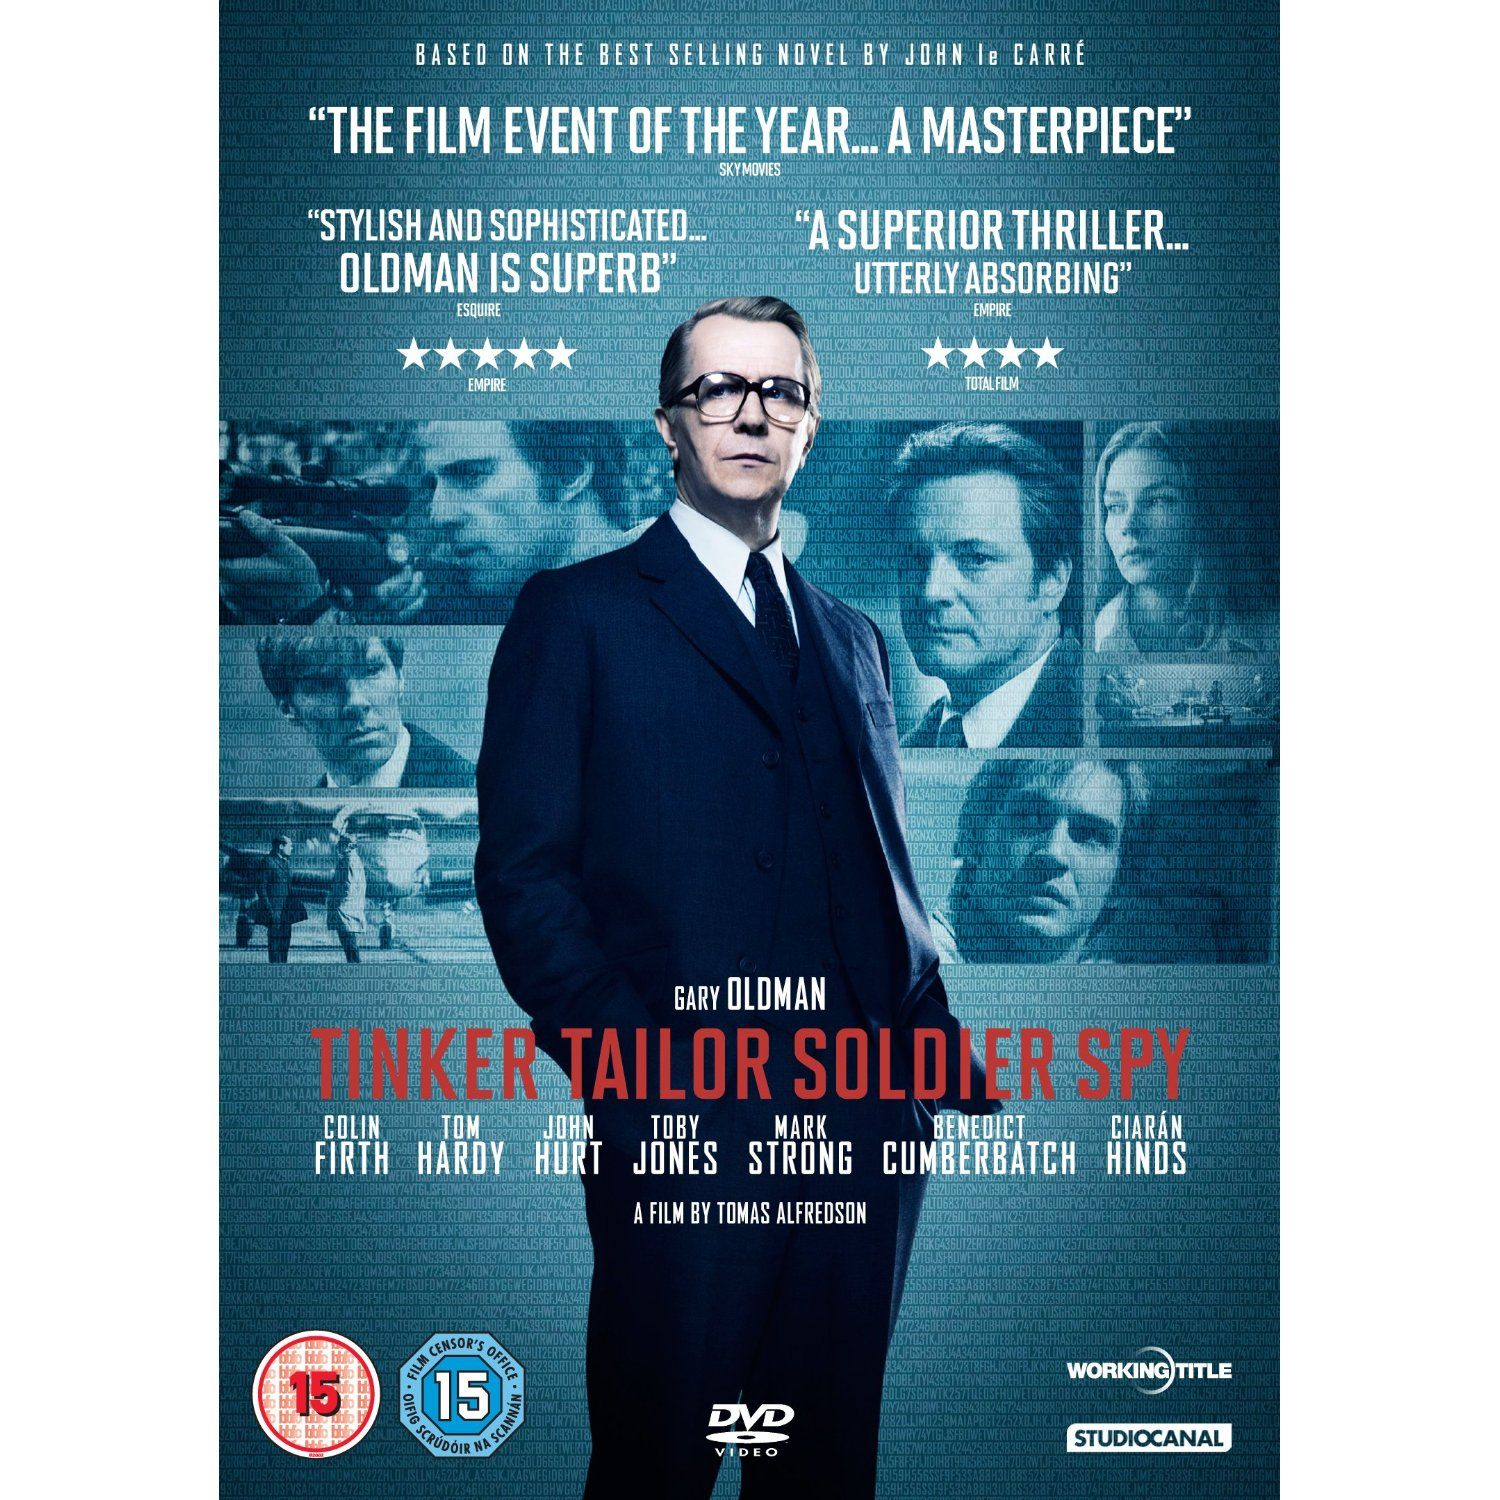 """Tinker Tailor Soldier Spy (2011), directed by Tomas Alfredson, based on the book by John Le Carre, starring Tom Hardy, Gary Oldman, Colin Firth, Kathy Burke, Benedict Cumberbatch and John Hurt. """"In the bleak days of the Cold War, espionage veteran George Smiley is forced from semi-retirement to uncover a Soviet agent within MI6."""""""